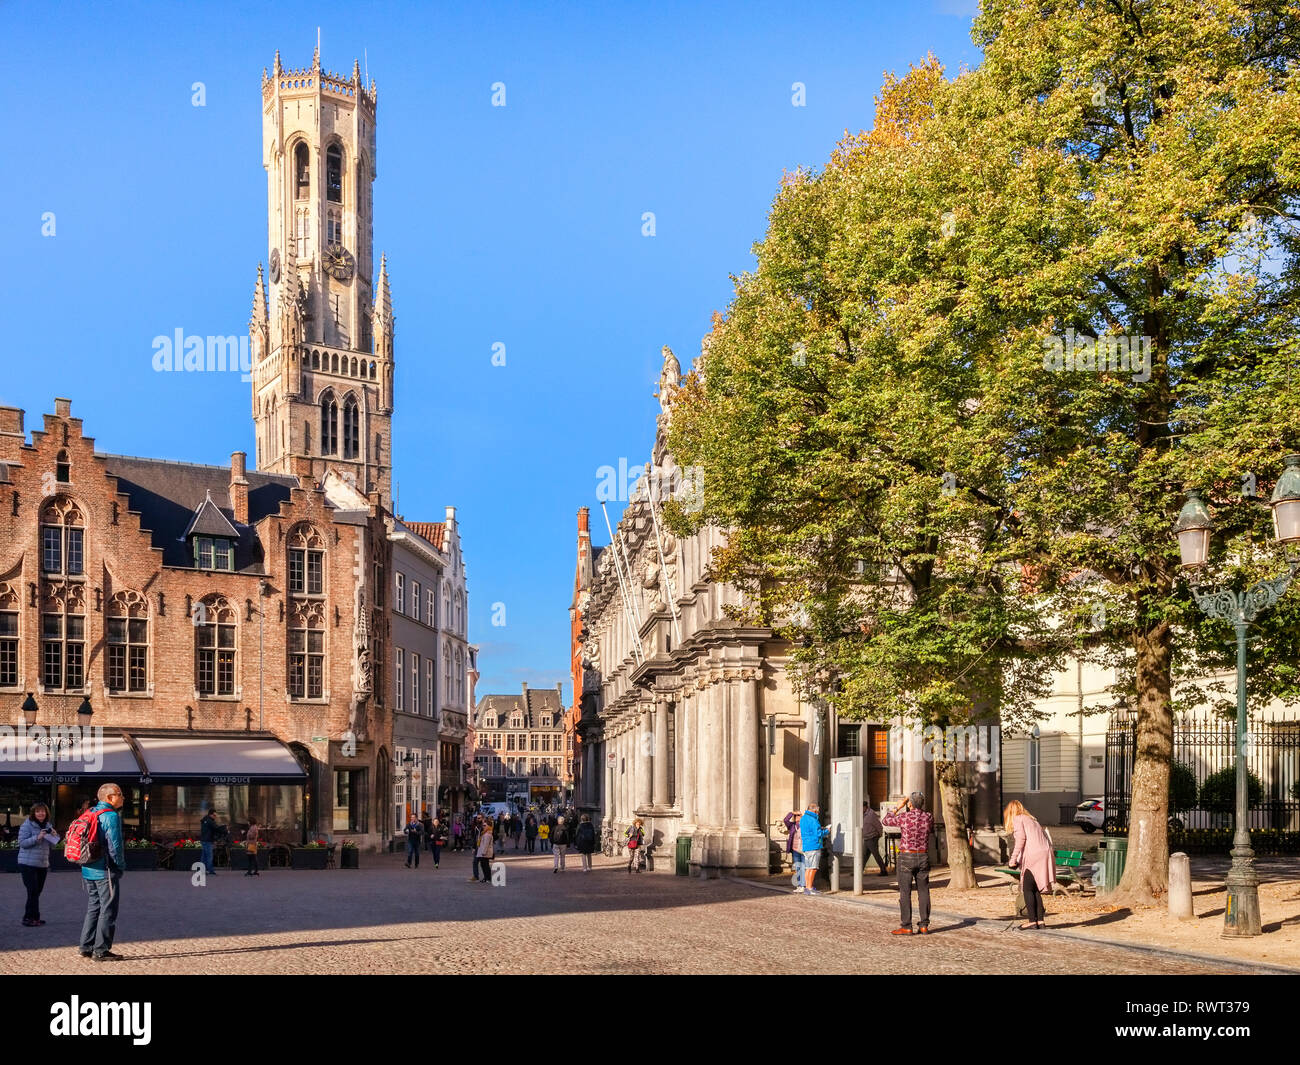 25 September 2018: Bruges, Belgium - Burg Square, looking towards the Market Square and the Belfry Tower on a sunny afternoon. Stock Photo